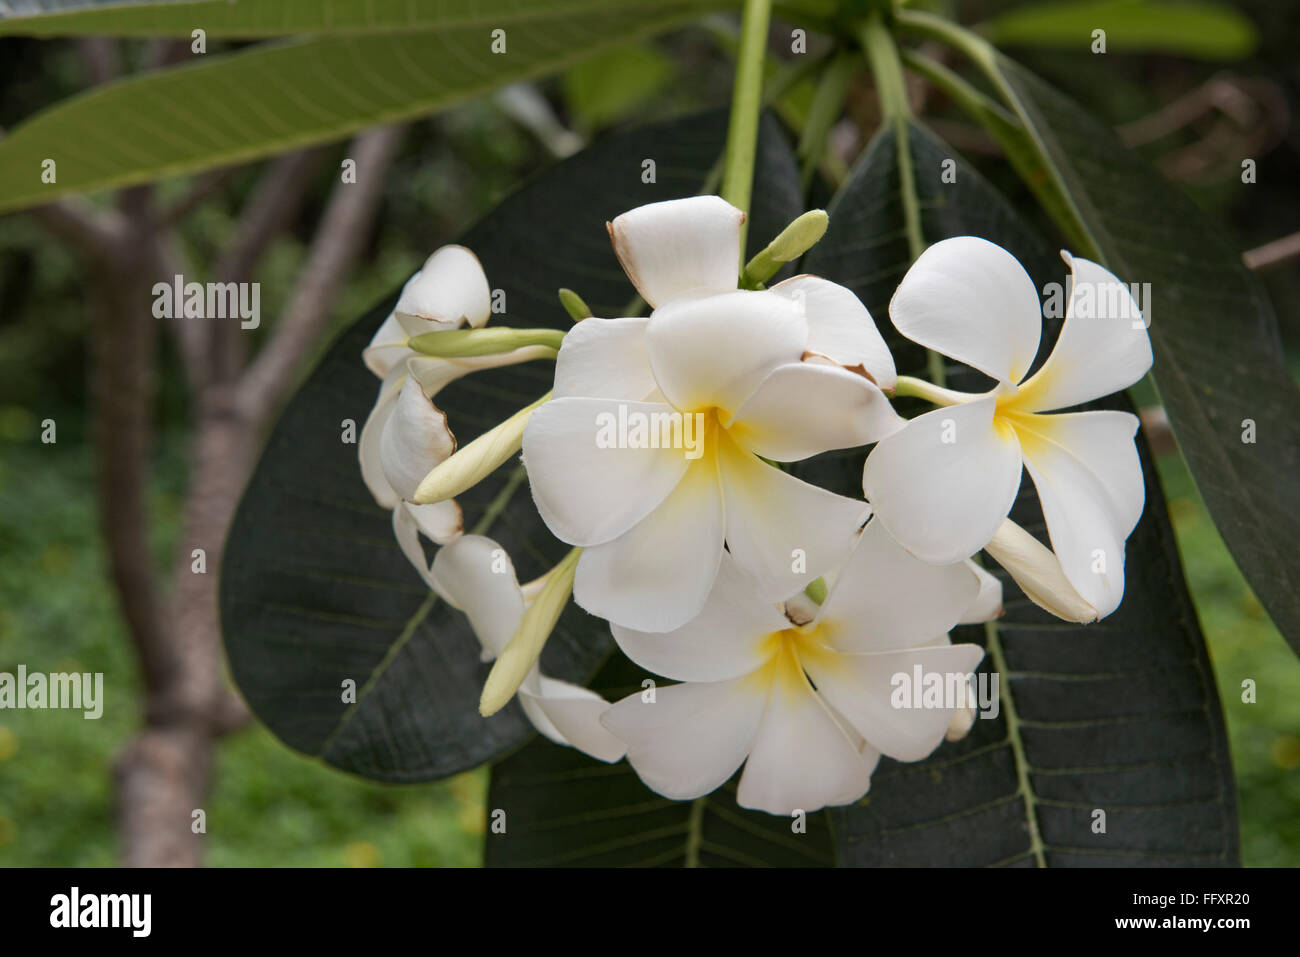 White flowers on a frangipani tree, Plumeria sp., an ornamental tropical plant, Bangkok, Thailand Stock Photo